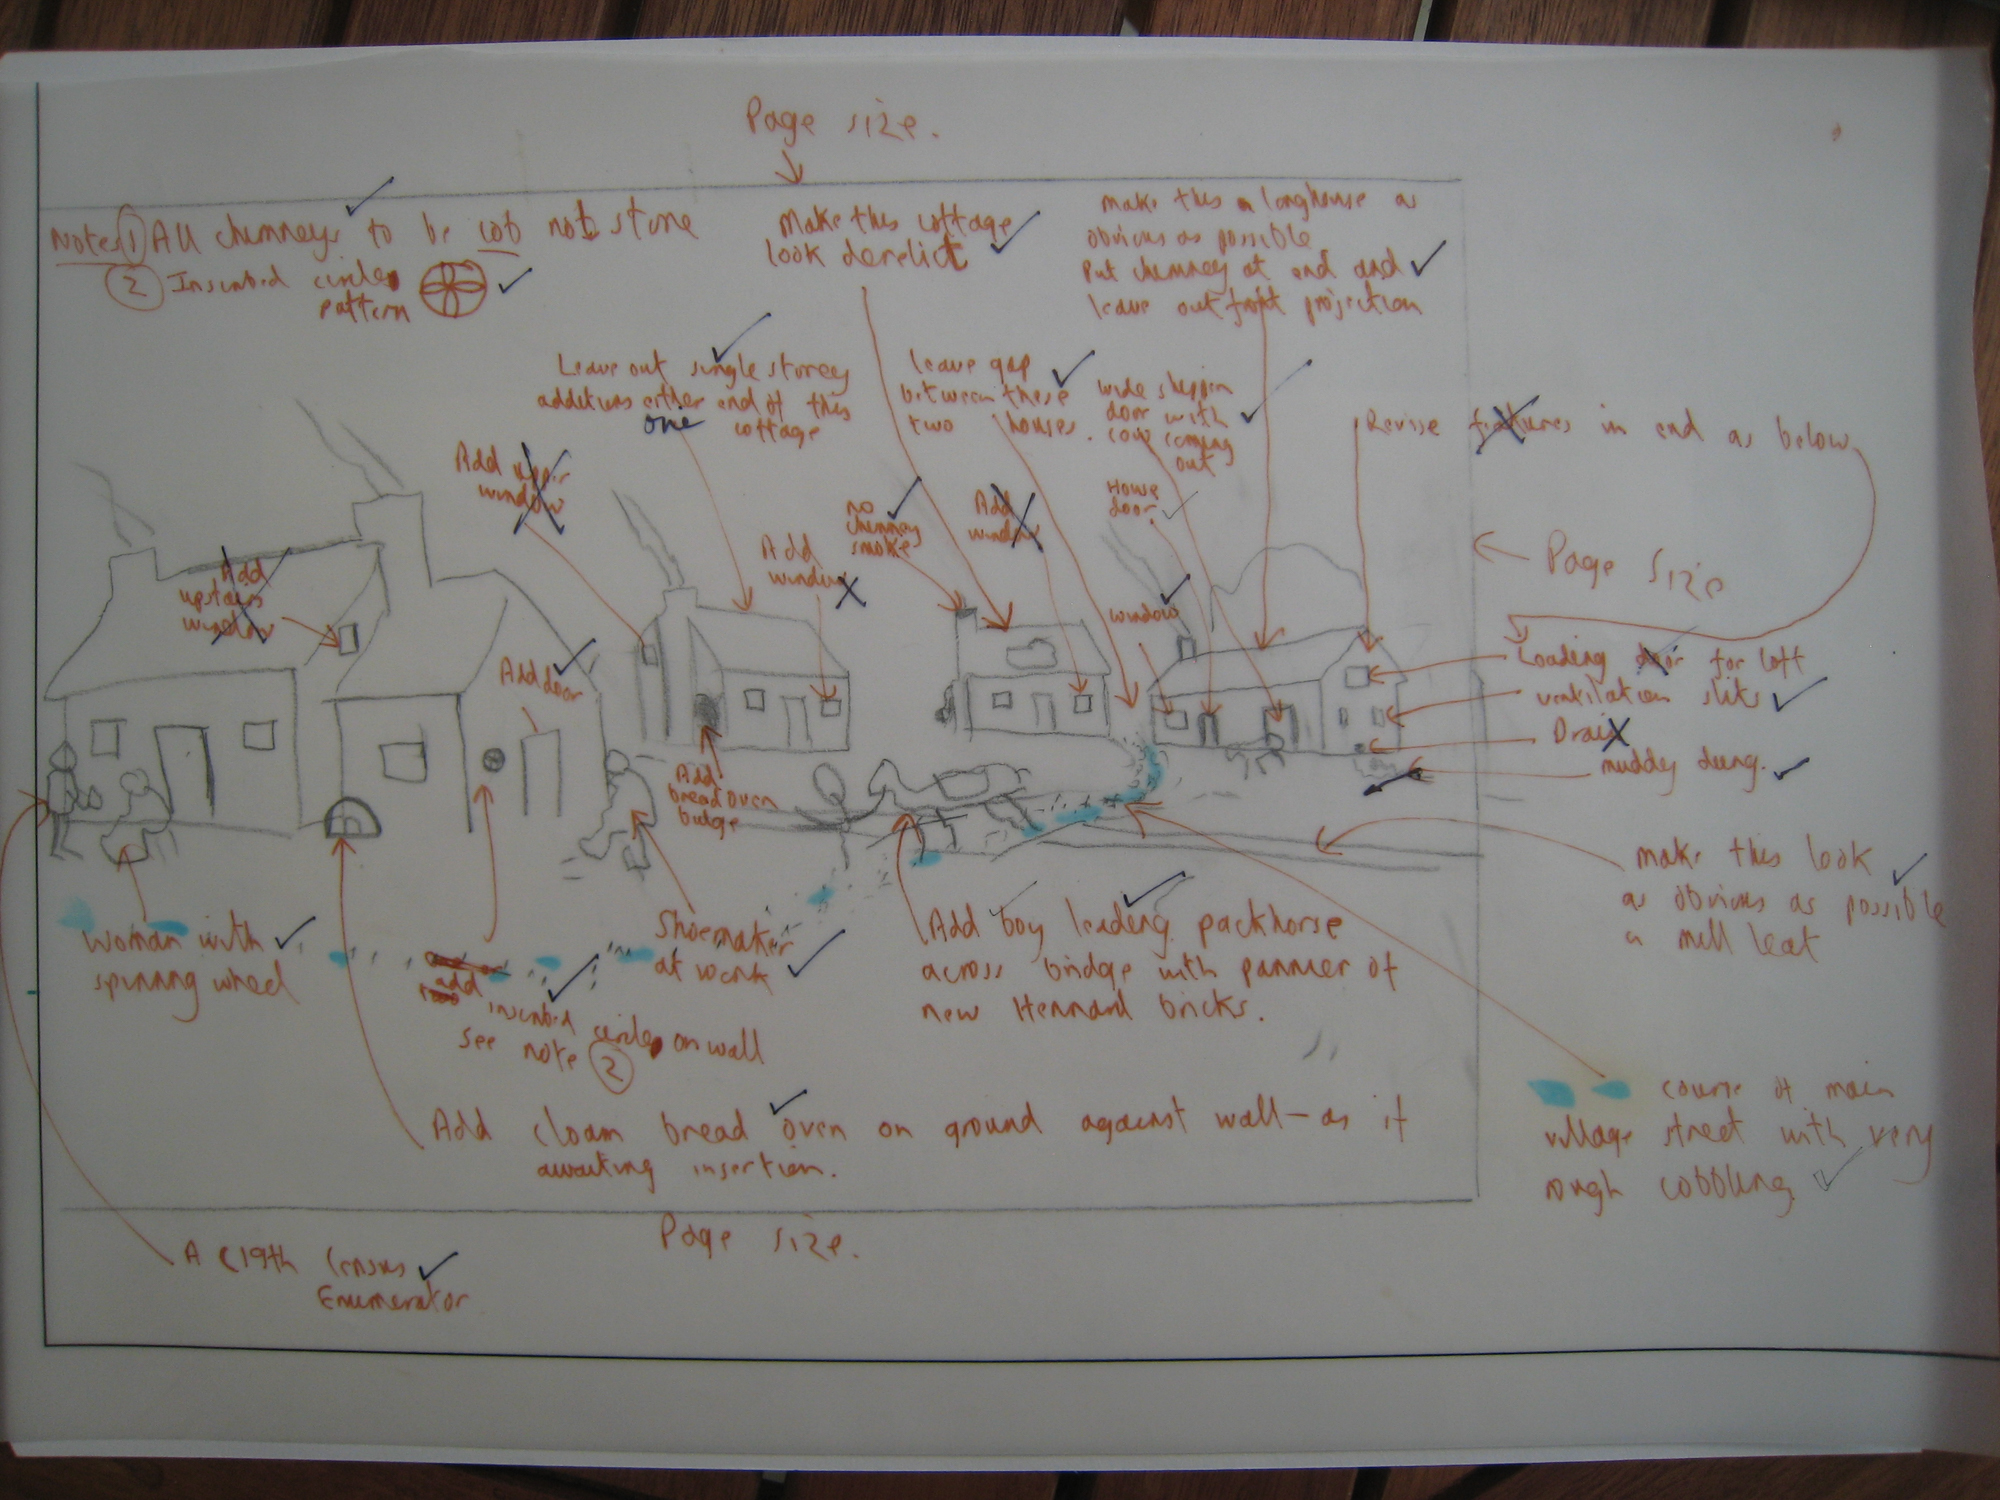 A drawing of Hennard Mill develops: comments on first draft